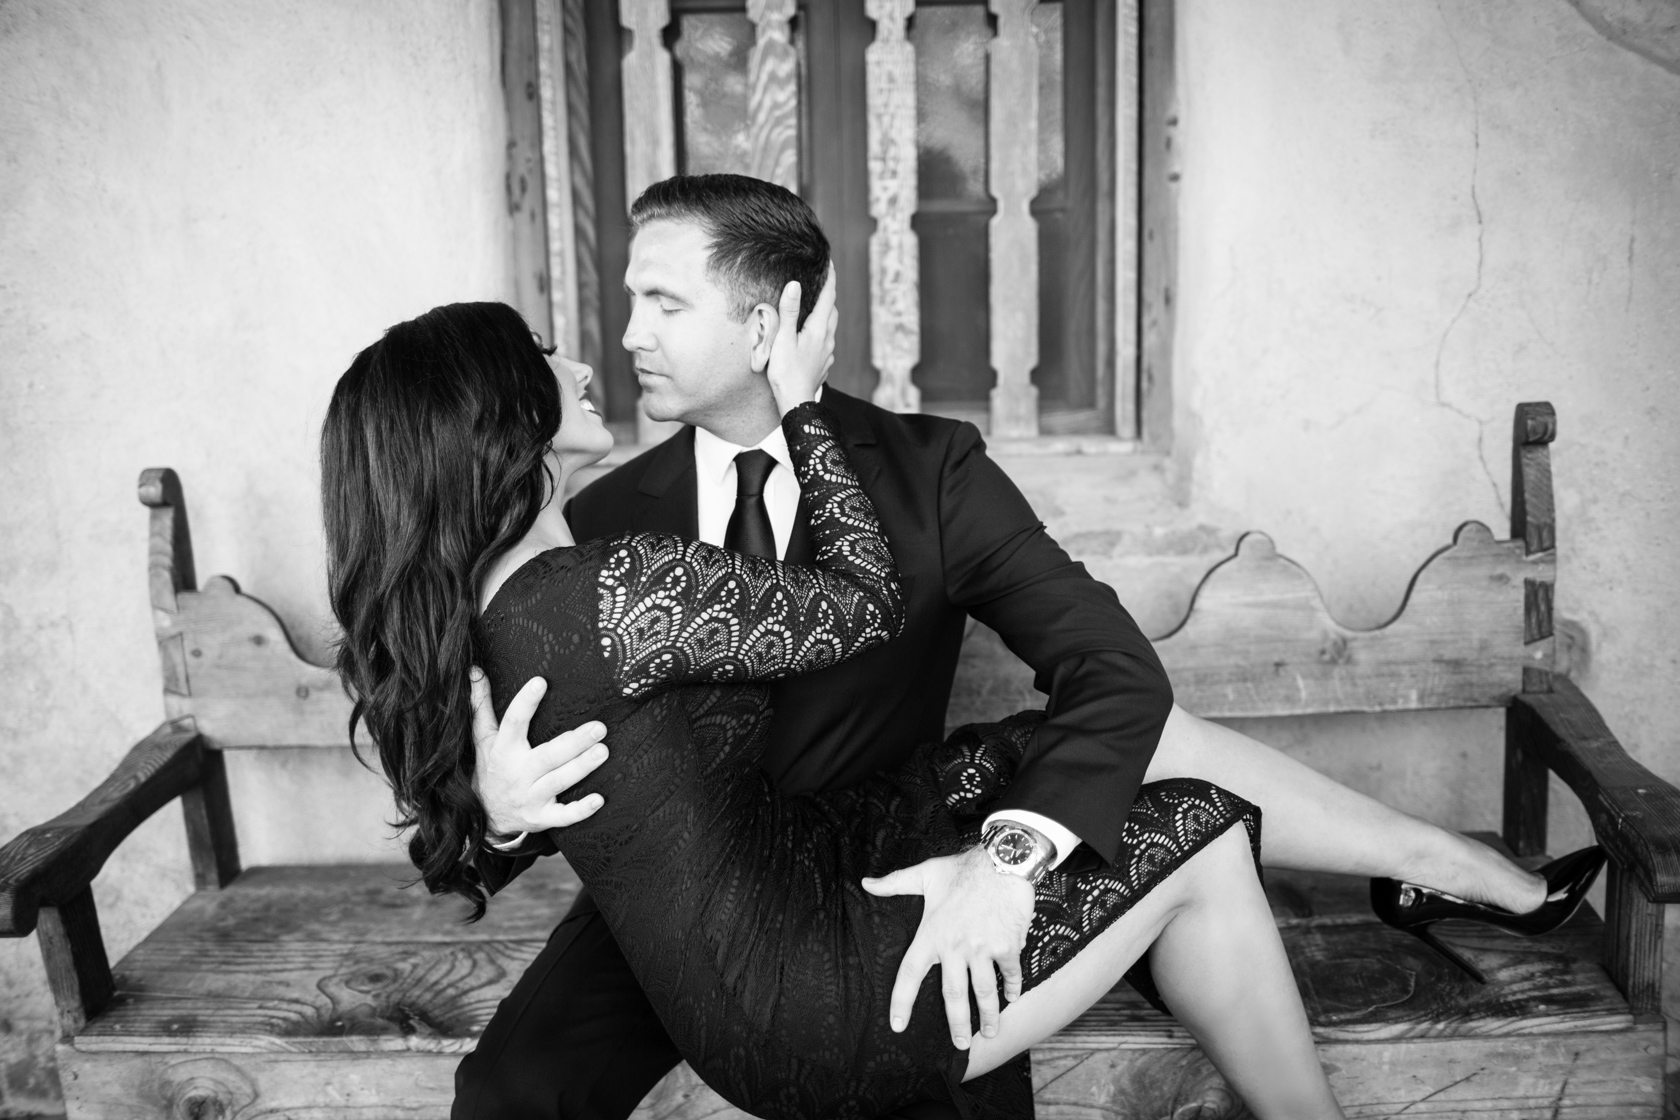 Mission_San_Juan_Capistrano_Engagement_Session_14.jpg